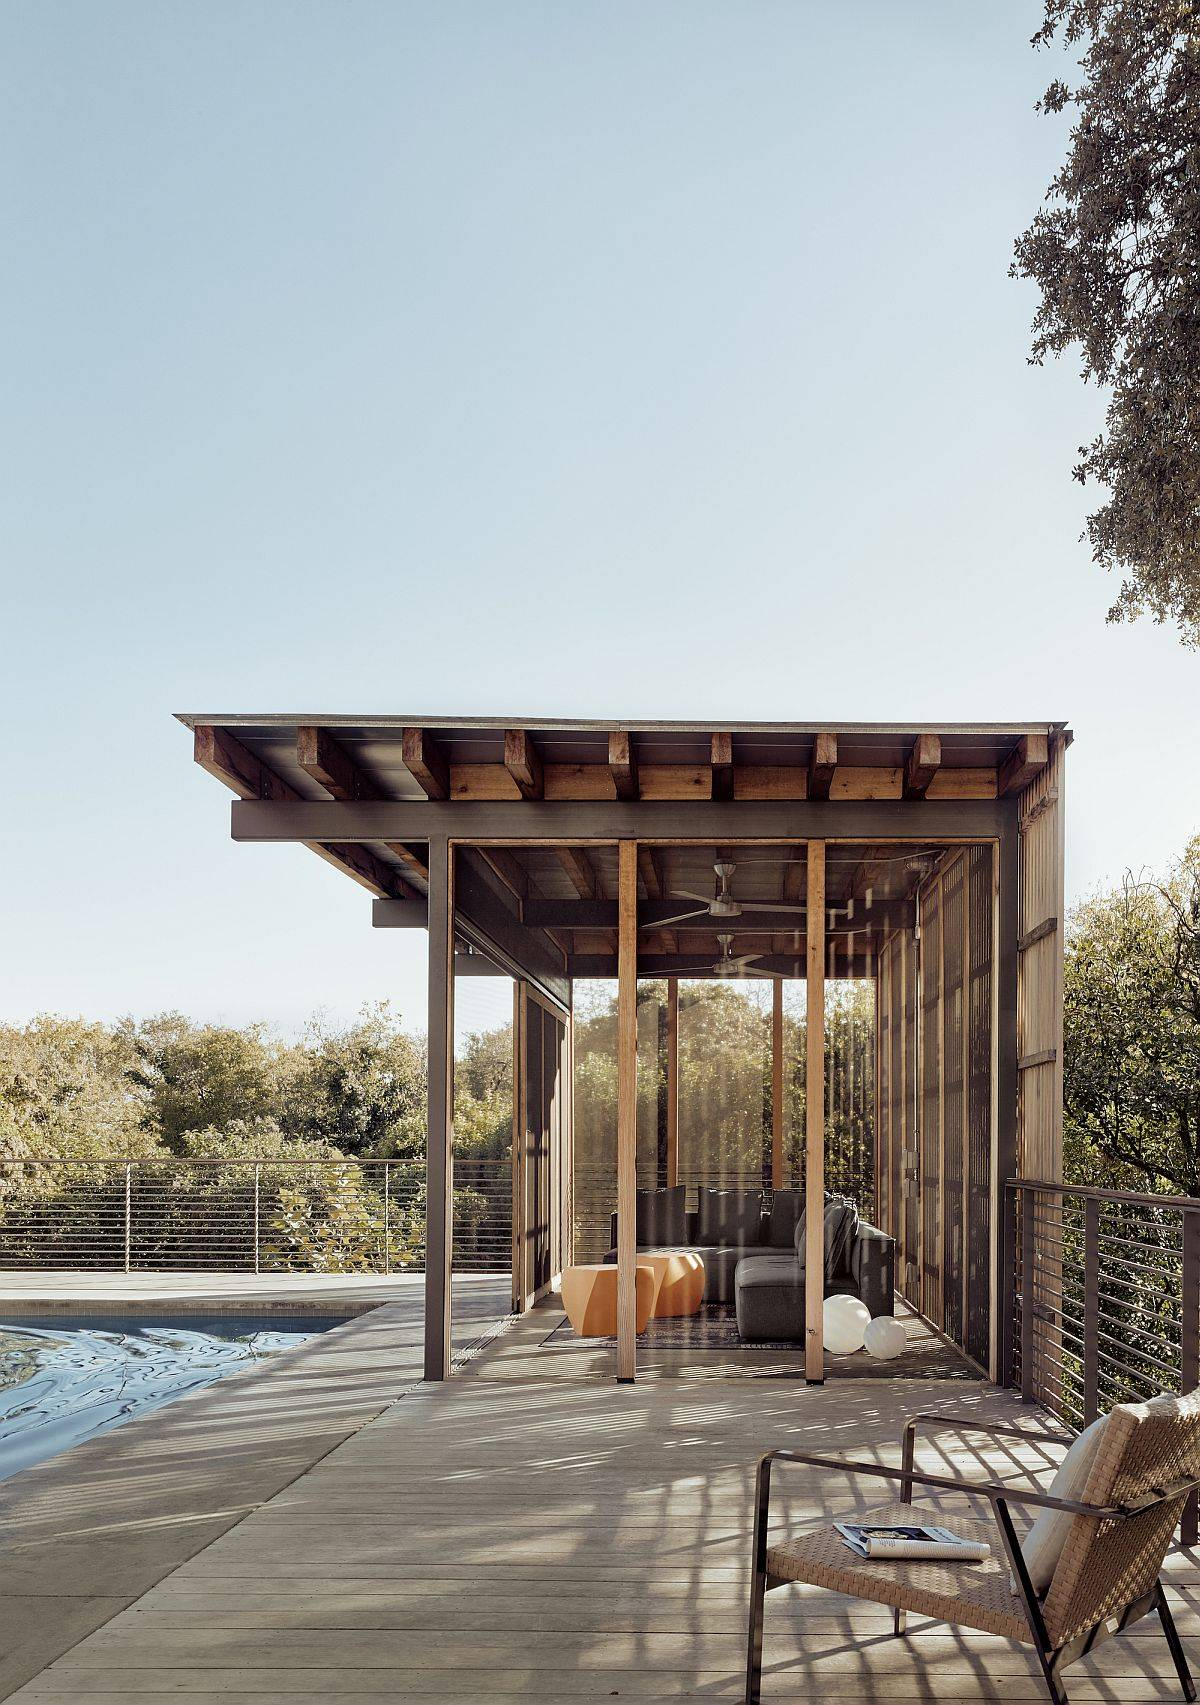 Concrete-wood-and-steel-structure-at-the-end-of-the-new-deck-and-terrace-completes-the-outdoor-space-35512